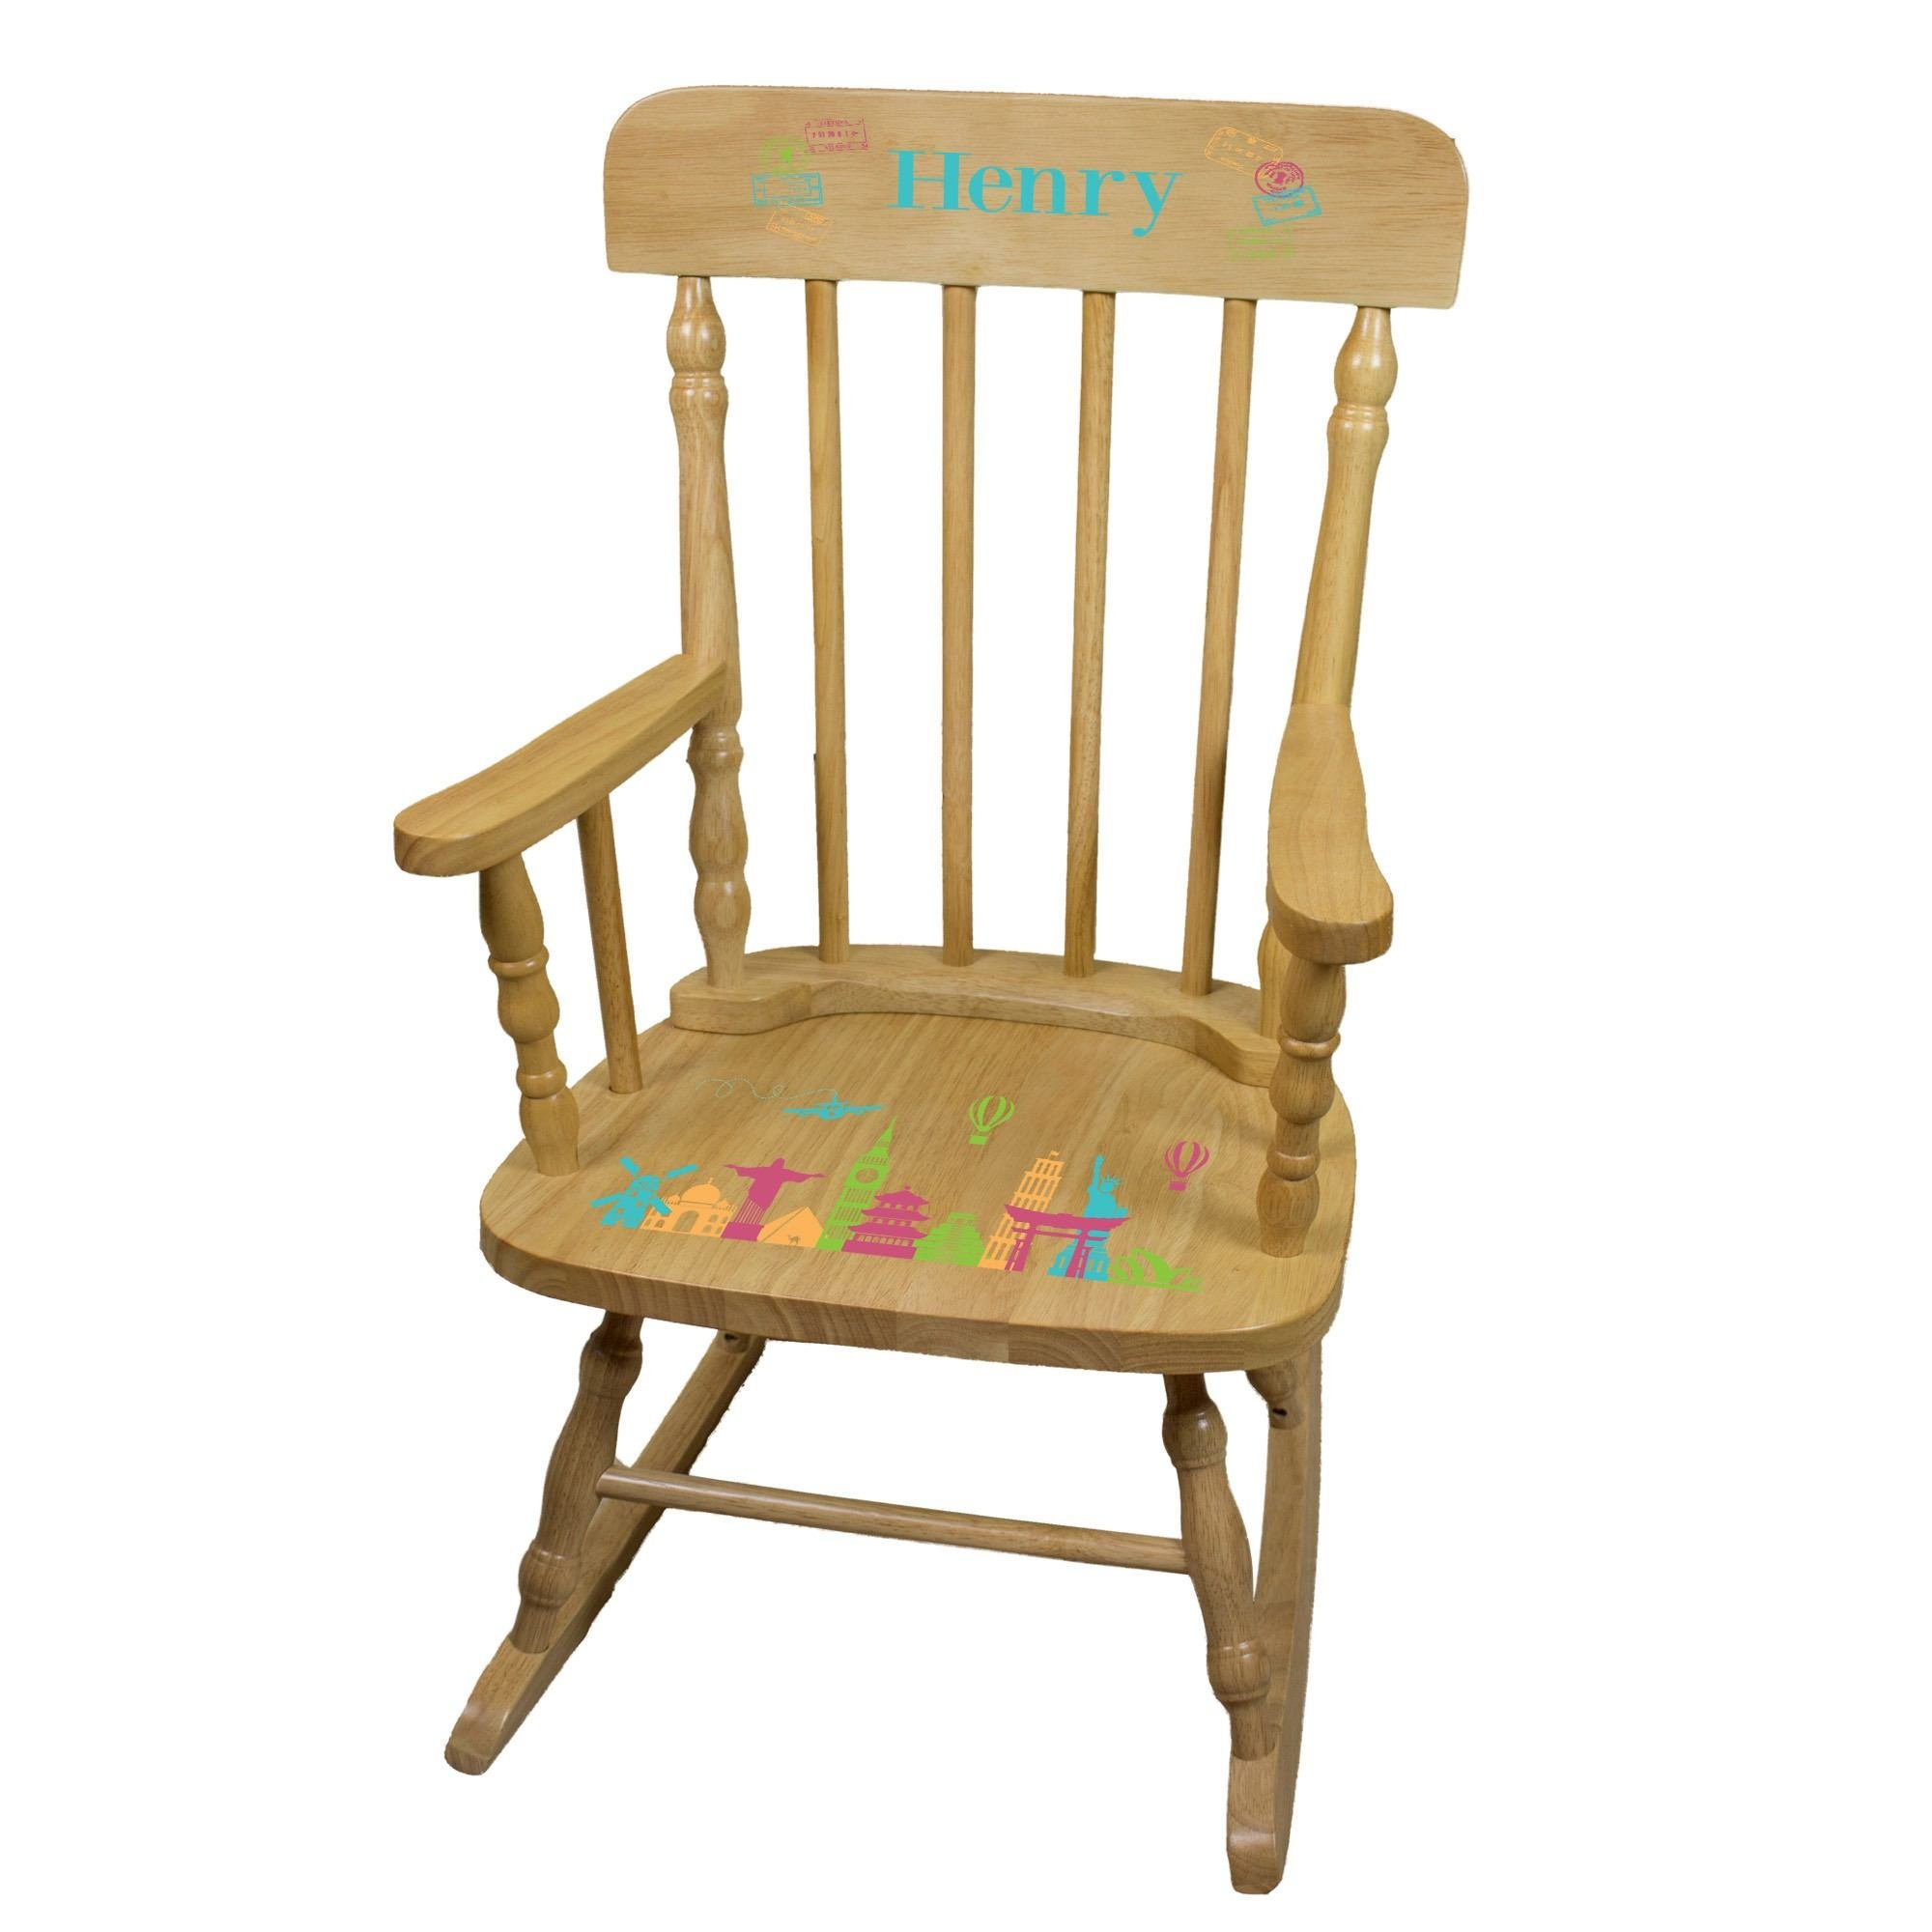 MyBambino Personalized World Travel Pink Natural Wooden Childrens Rocking Chair